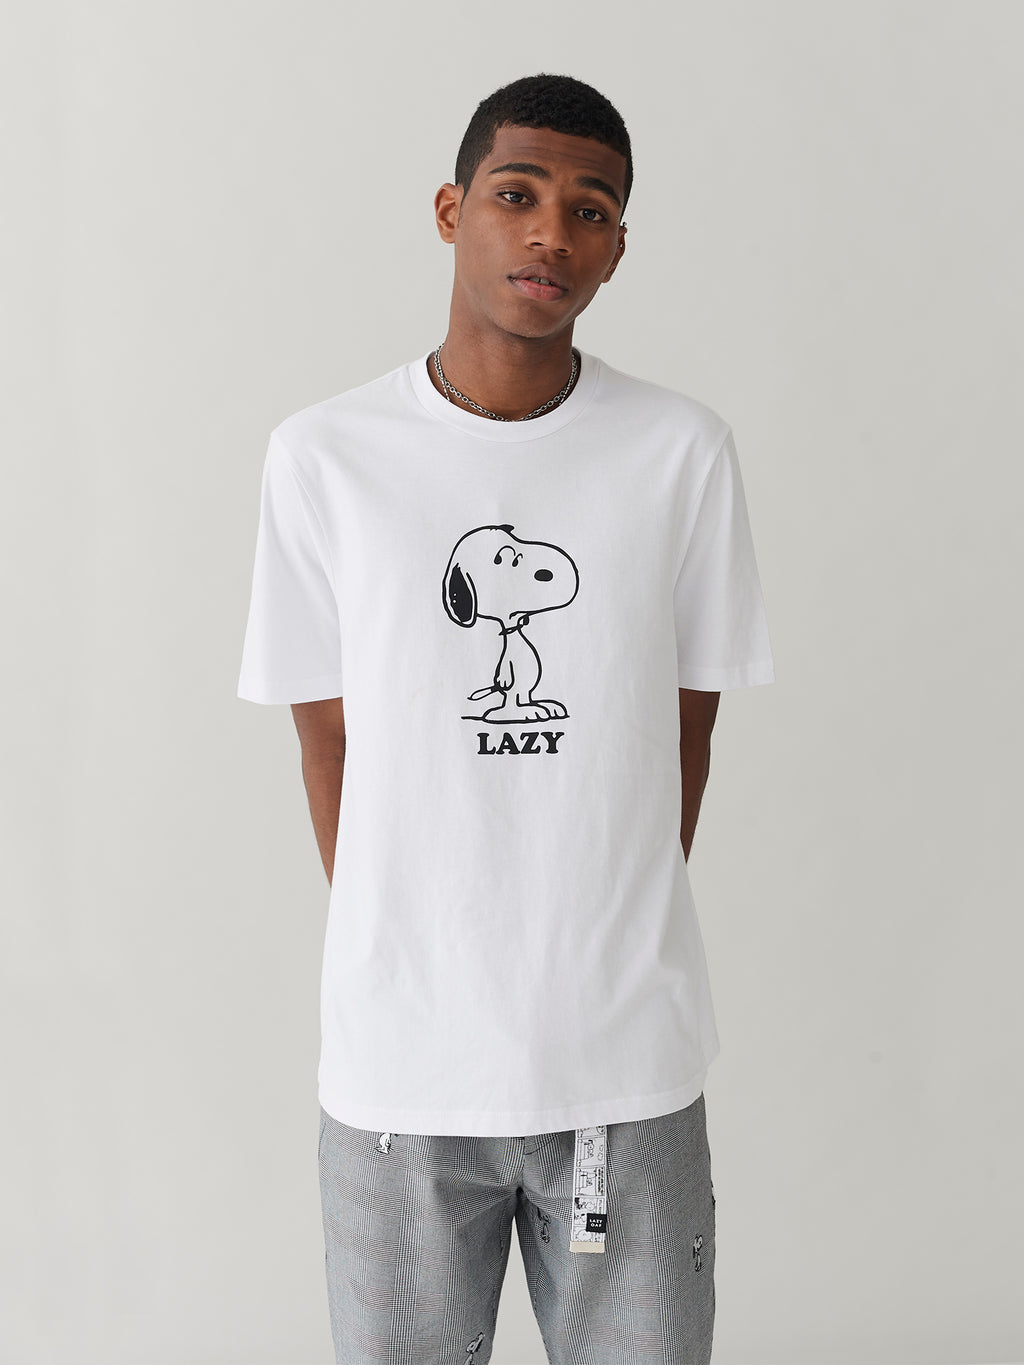 collection-mens-lazy-oaf-x-peanuts collection-mens-t-shirts collection-men-new-in-1